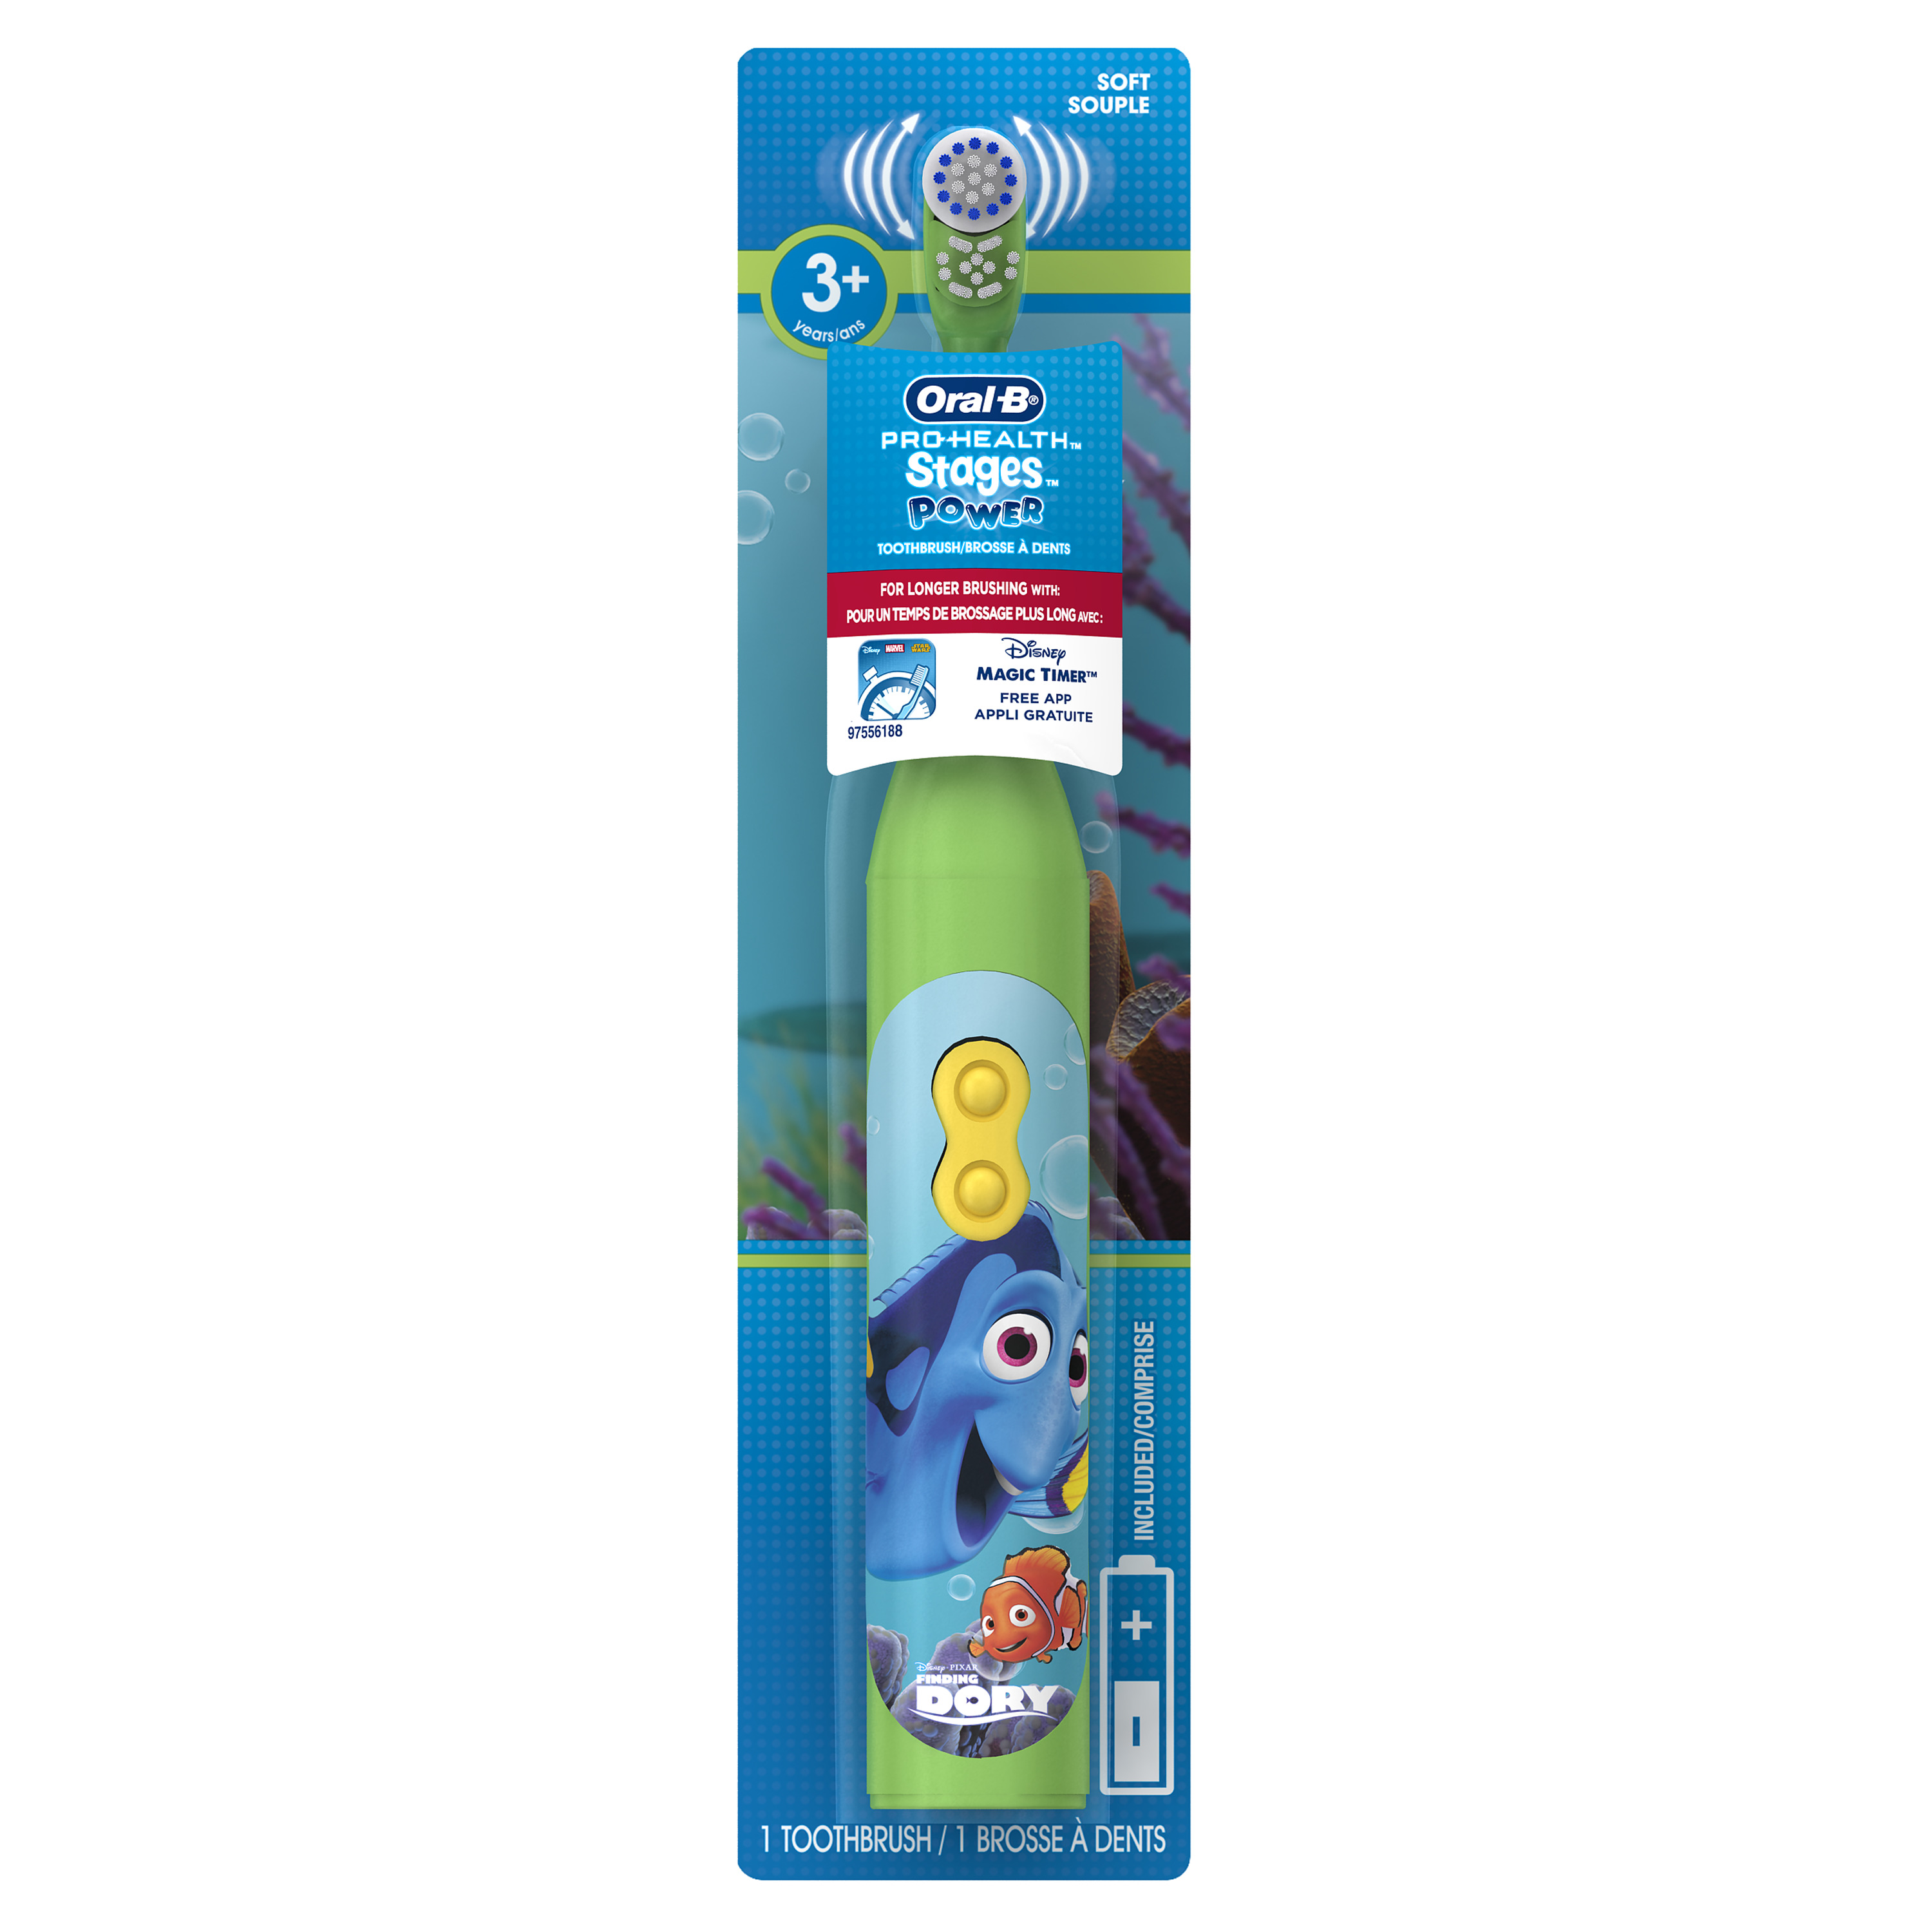 Oral-B Pro-Health Stages Battery Toothbrush featuring Disney and Pixar's Finding Dory